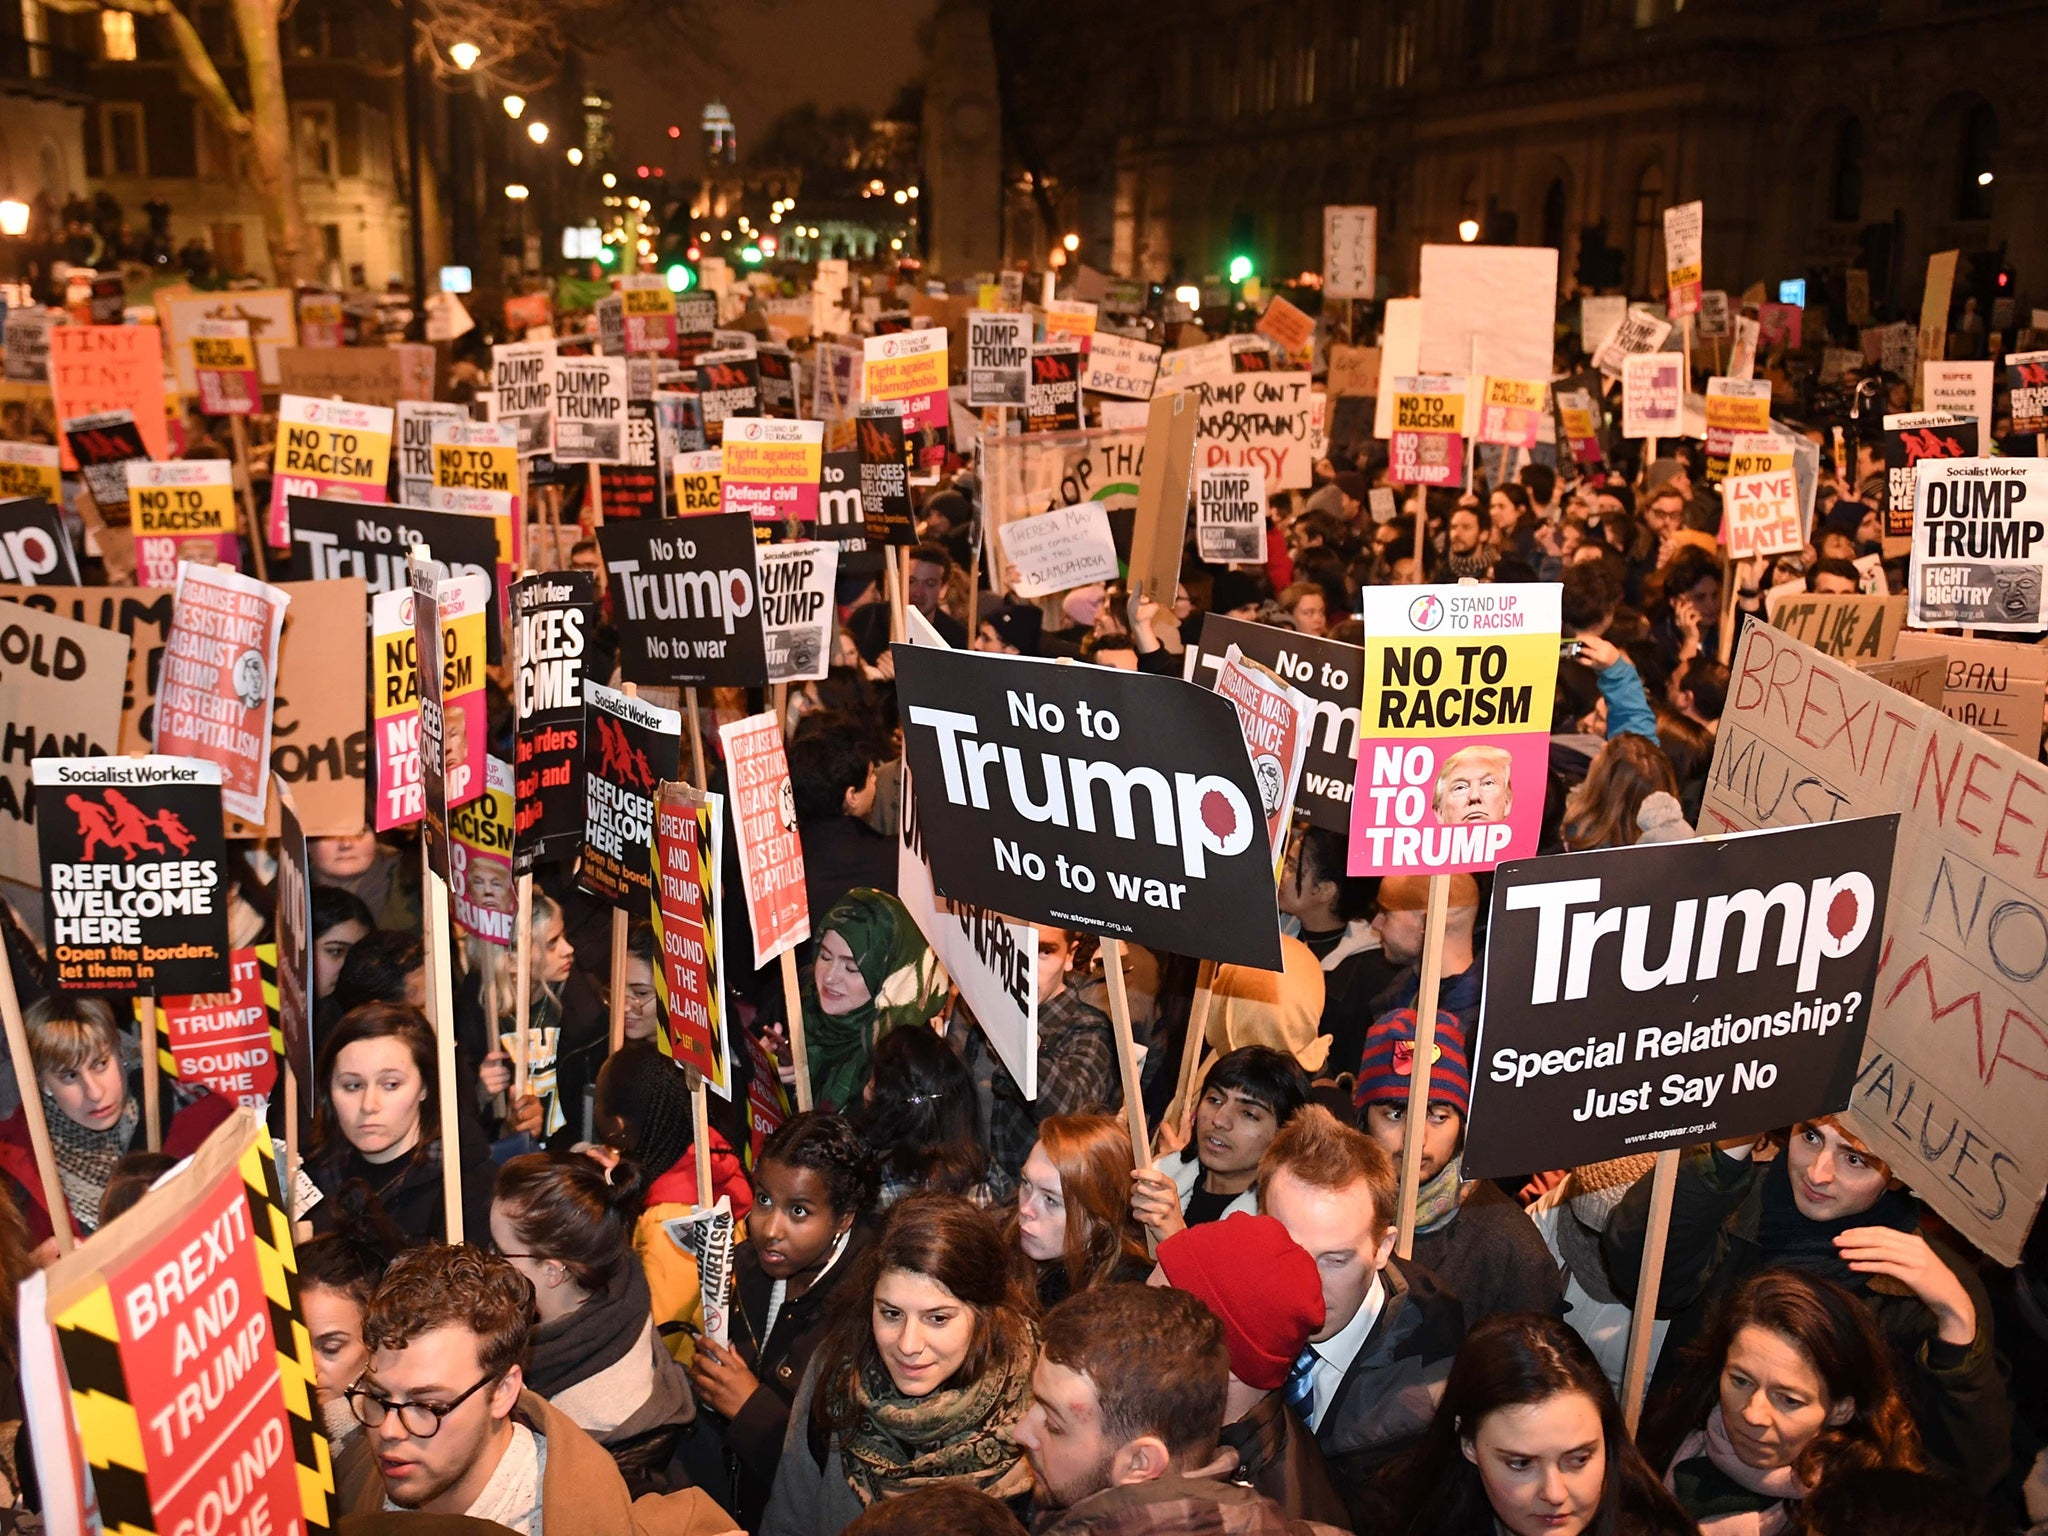 Uk muslims press for peace at 10 downing street - Thousands Descend On Downing Street Amid Global Protests At Donald Trump S Travel Ban The Independent